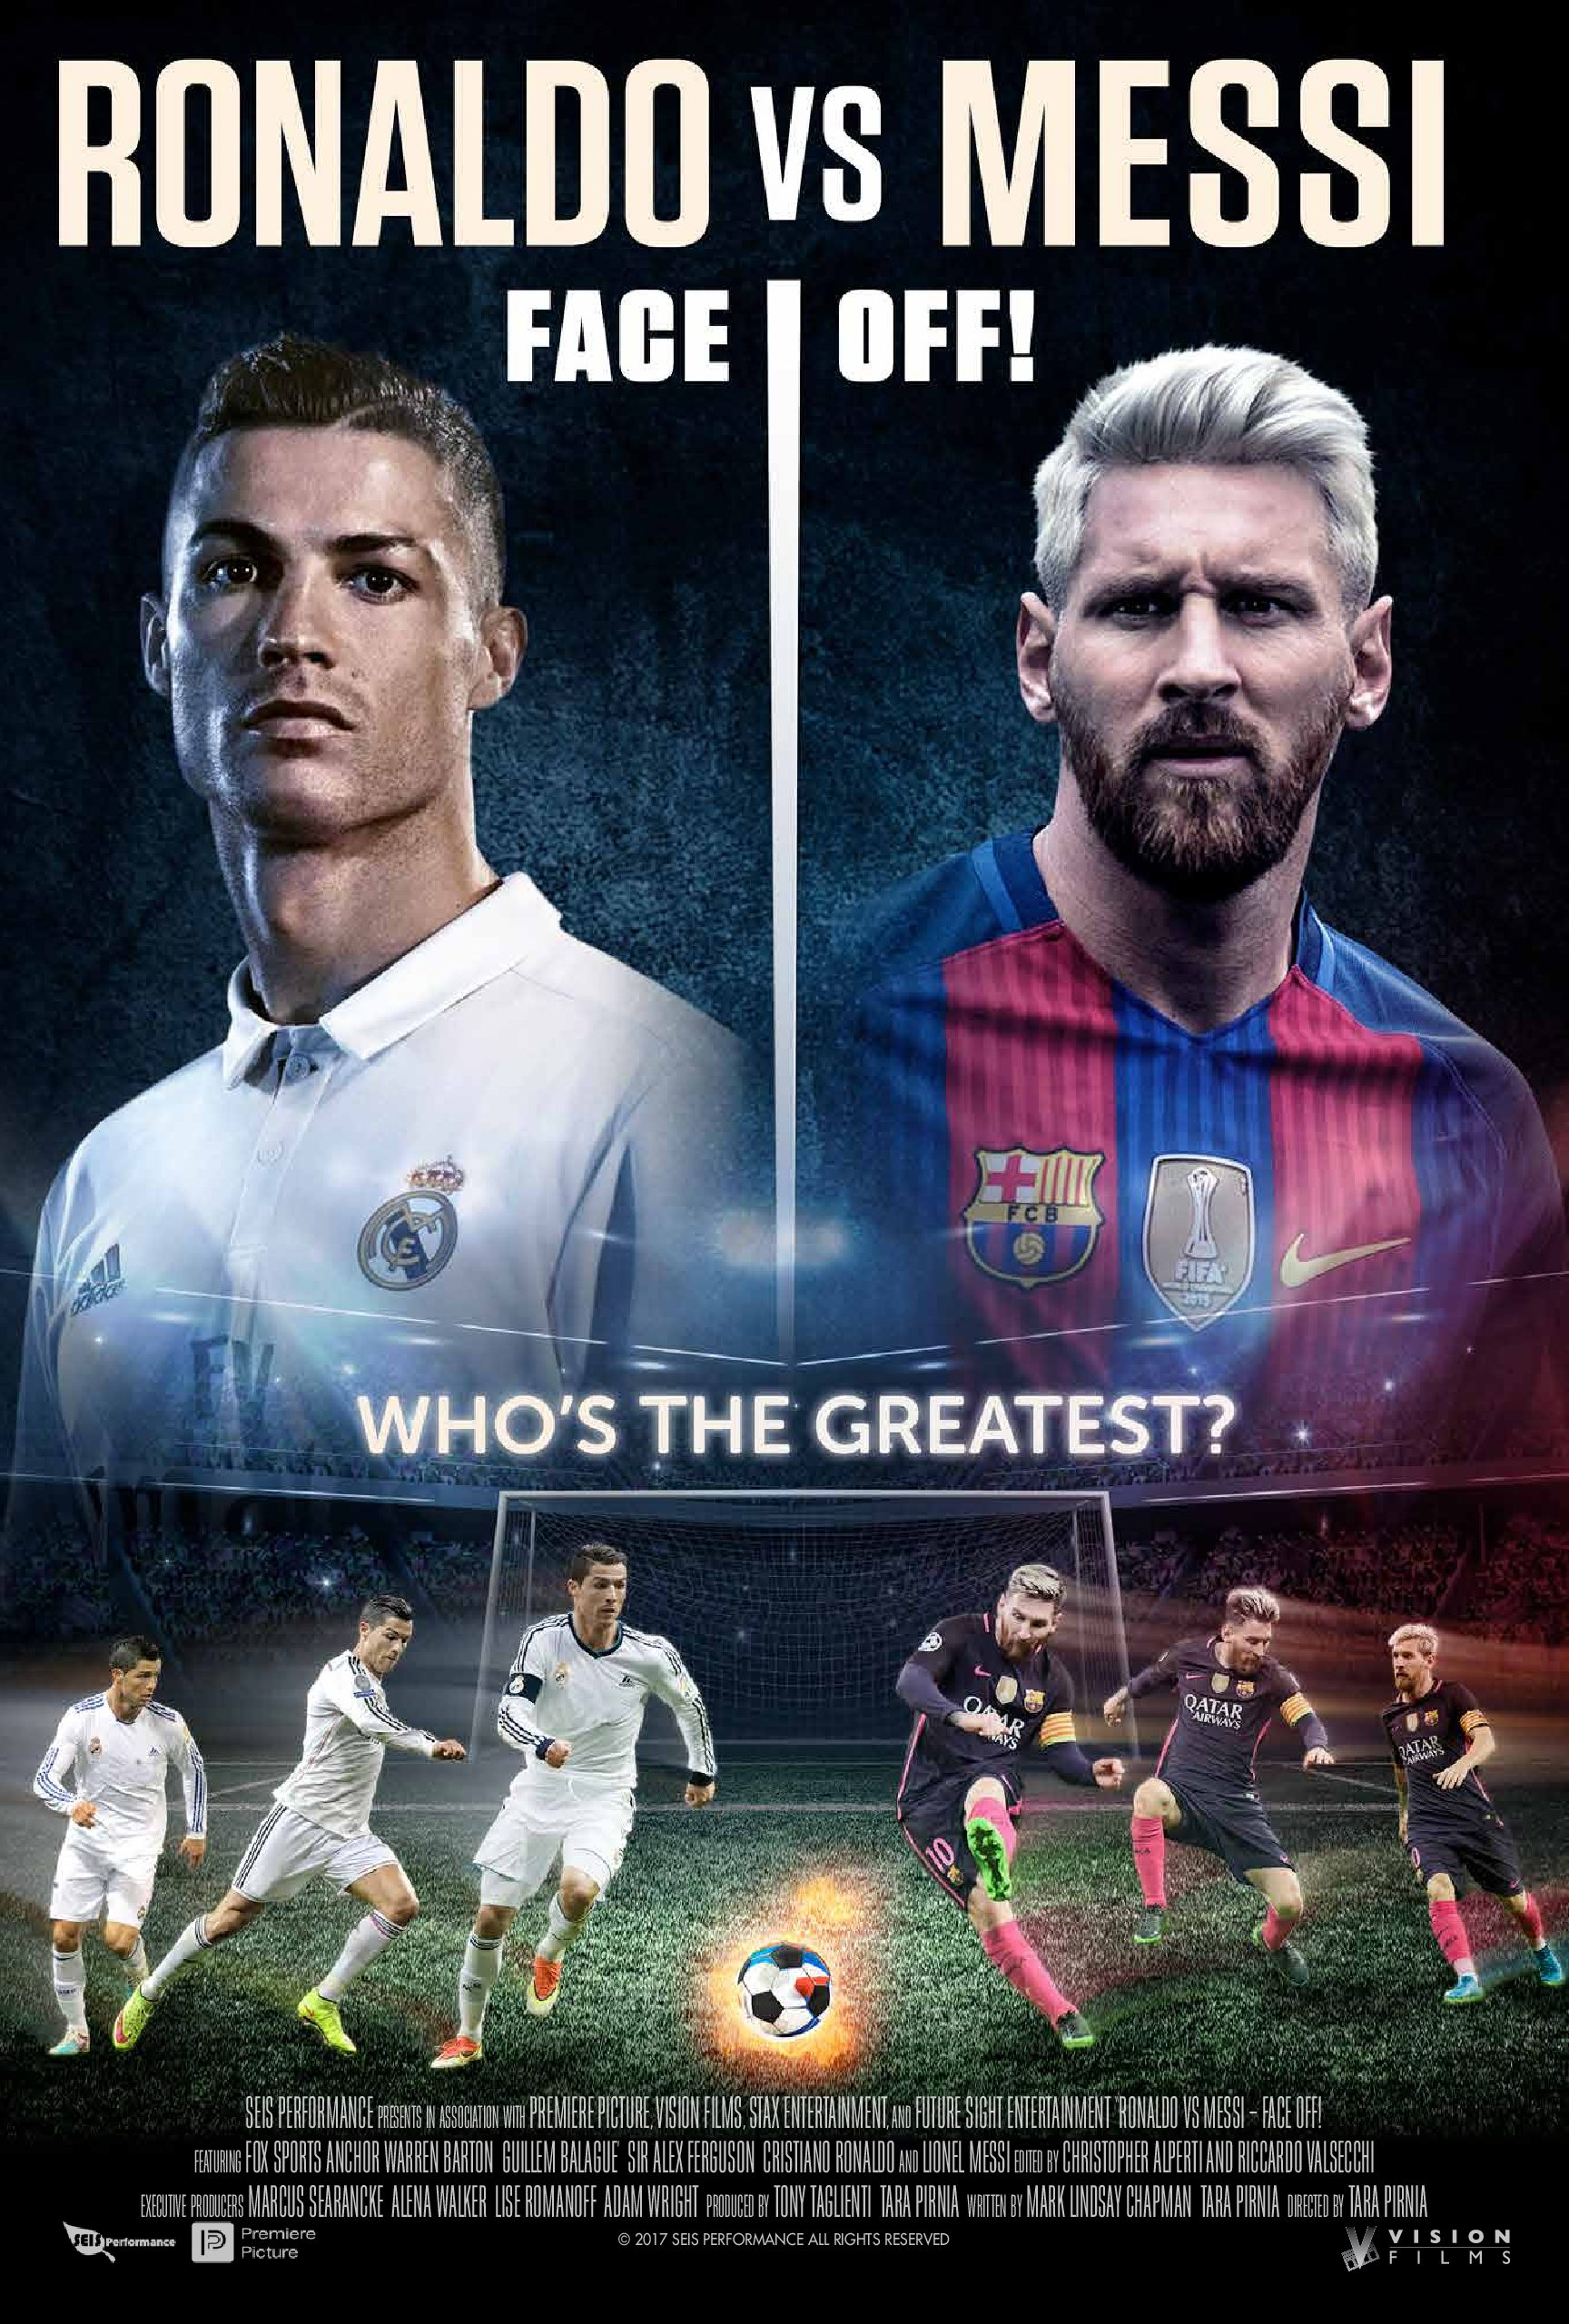 'Ronaldo vs Messi' now available internationally